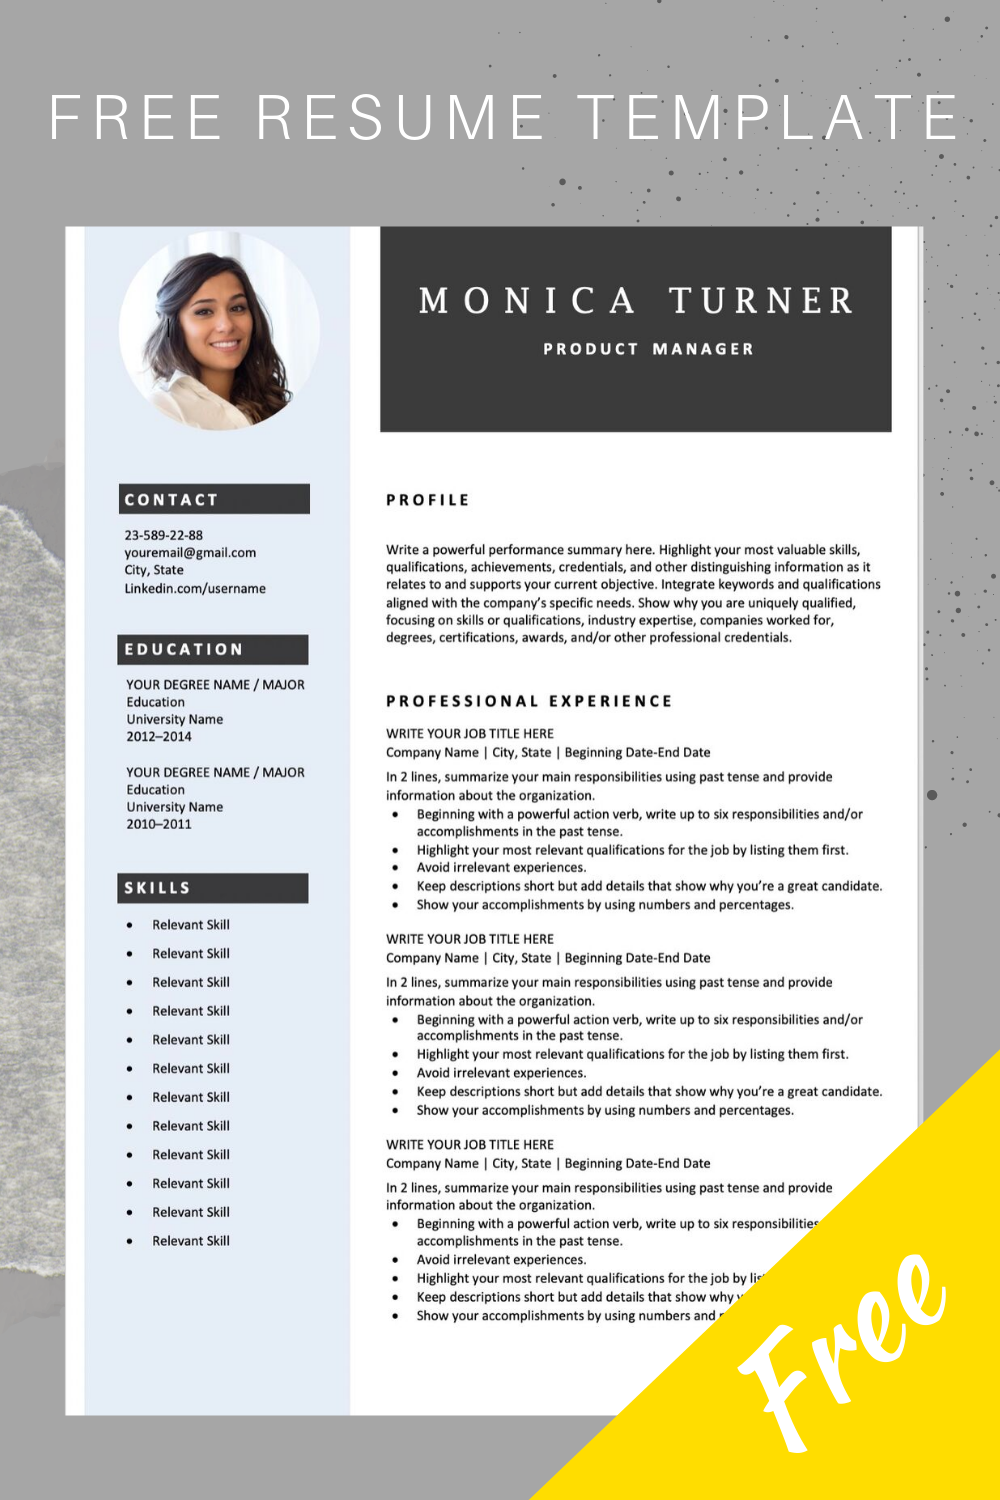 Download This Professional Resume Template You Can Easily Adjust It In M Free Resume Template Word Microsoft Word Resume Template Downloadable Resume Template